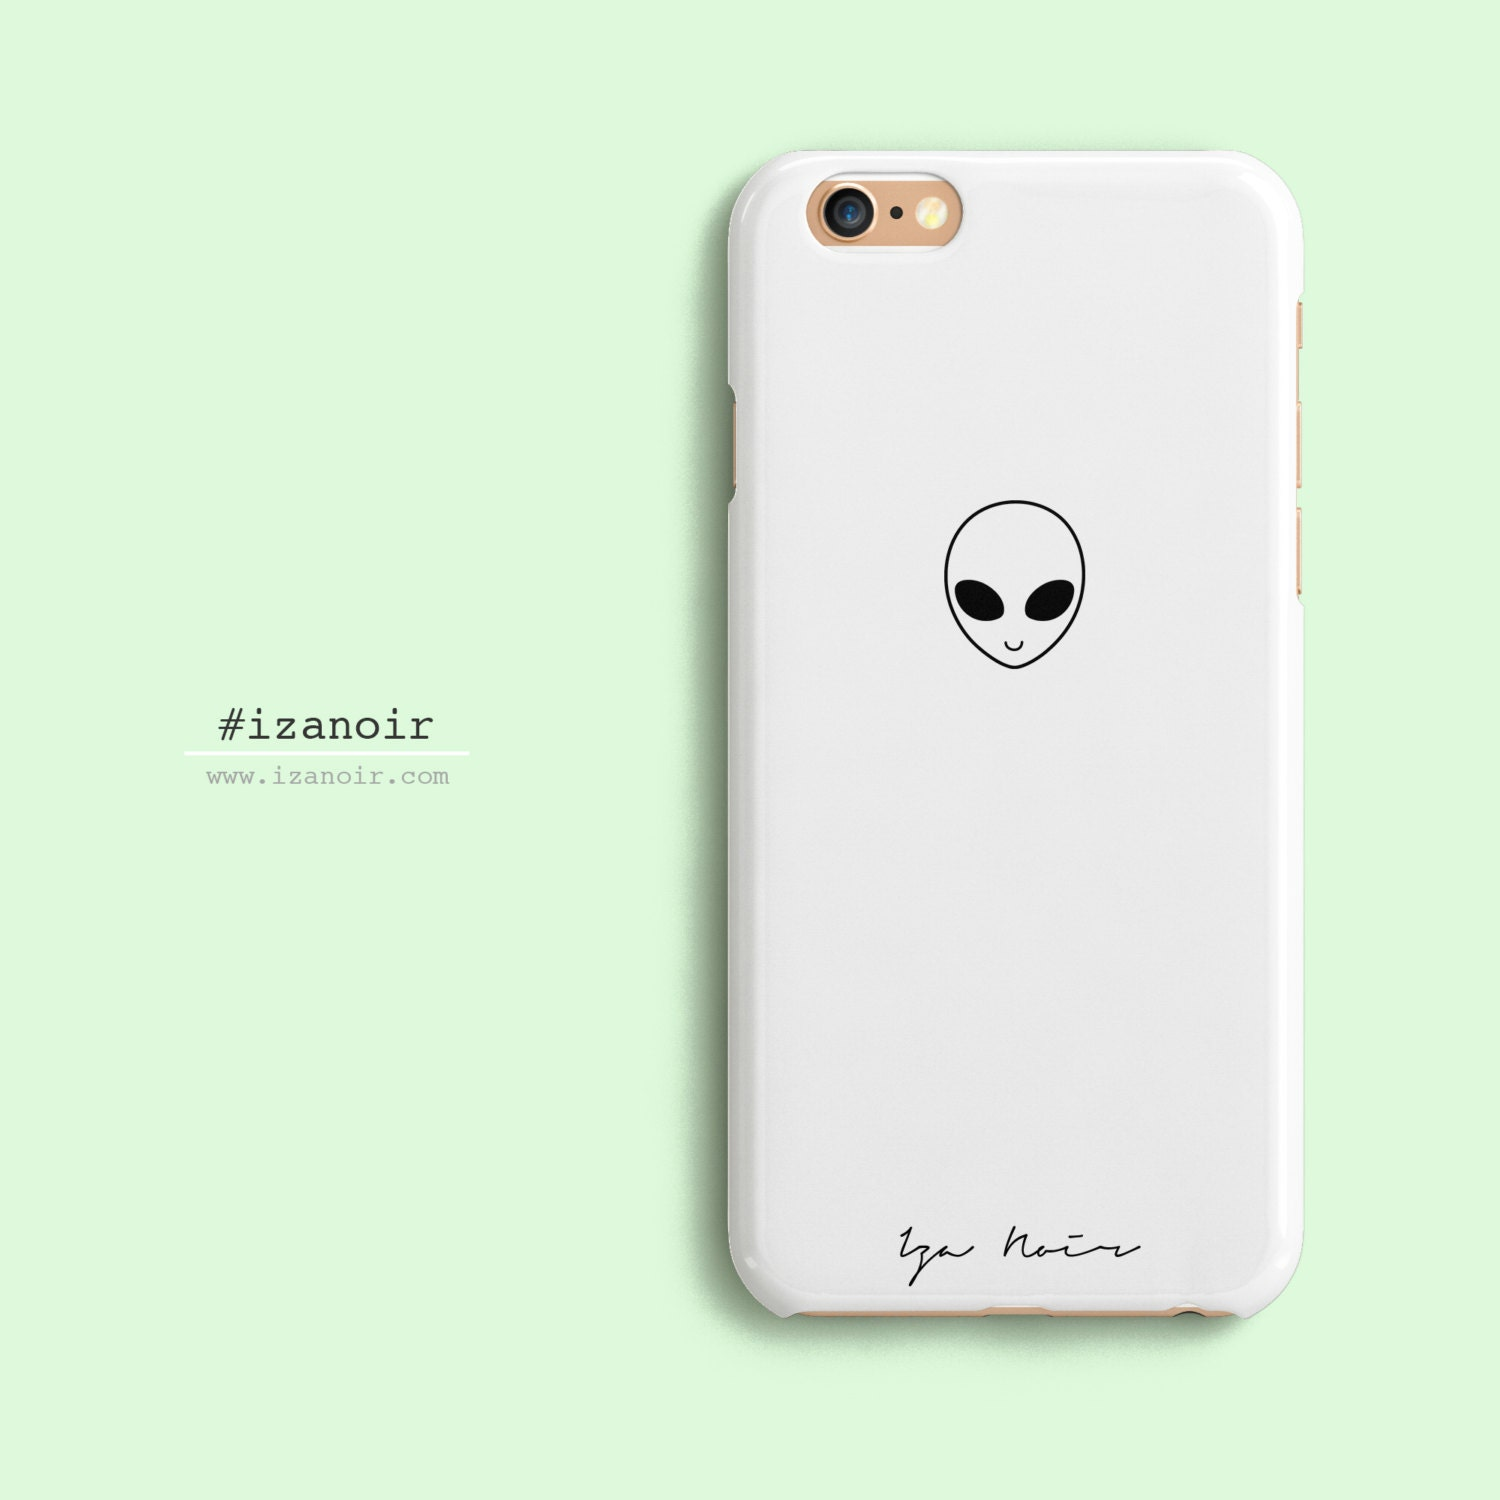 tumblr iphone cases iphone 8 new iphone matte iphone iphone 6 13145